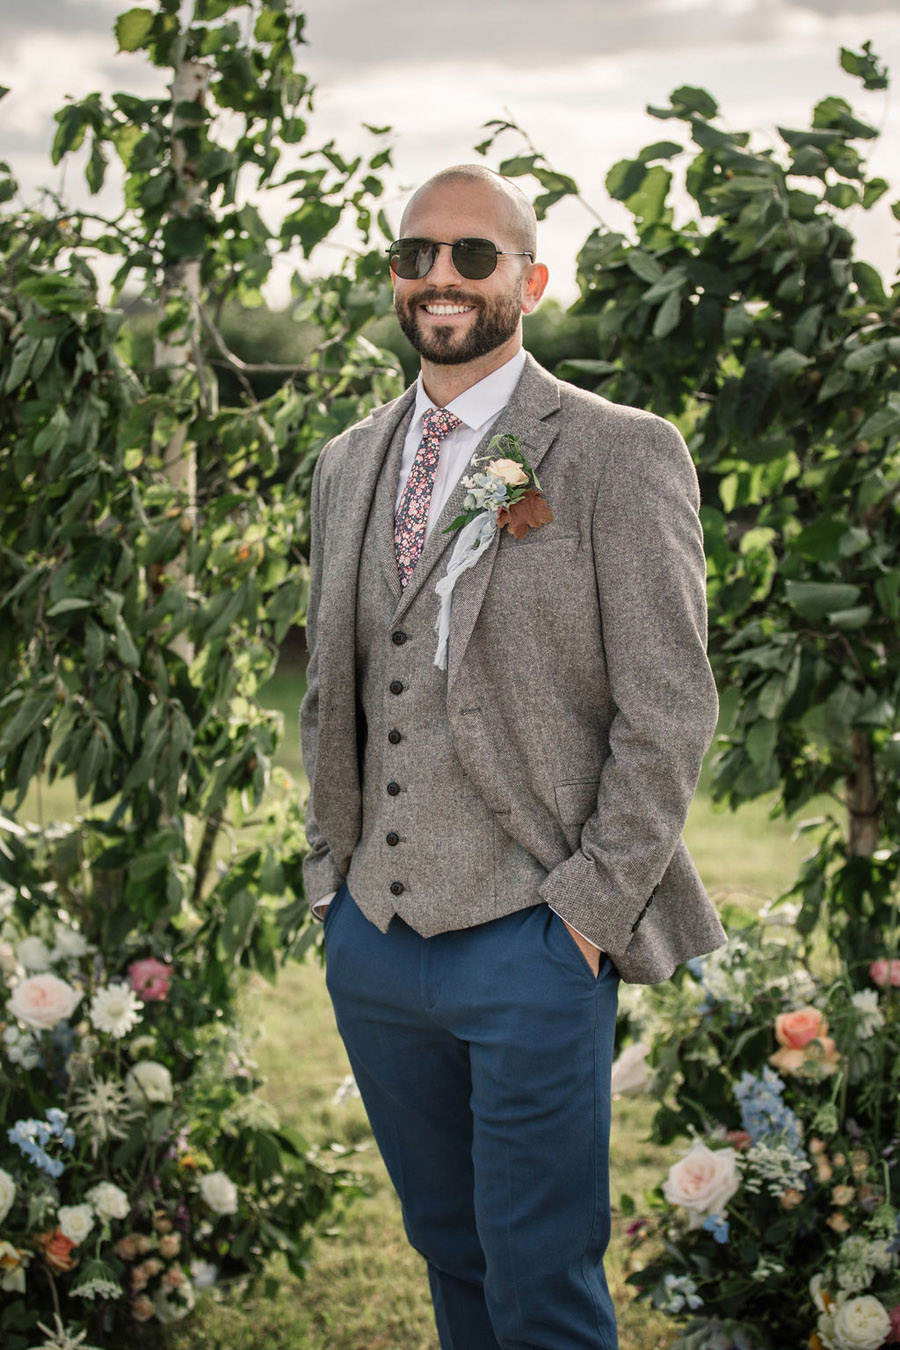 Evening sunset wedding inspiration at Willow Grange Farm, with Becky Harley Photography (29)